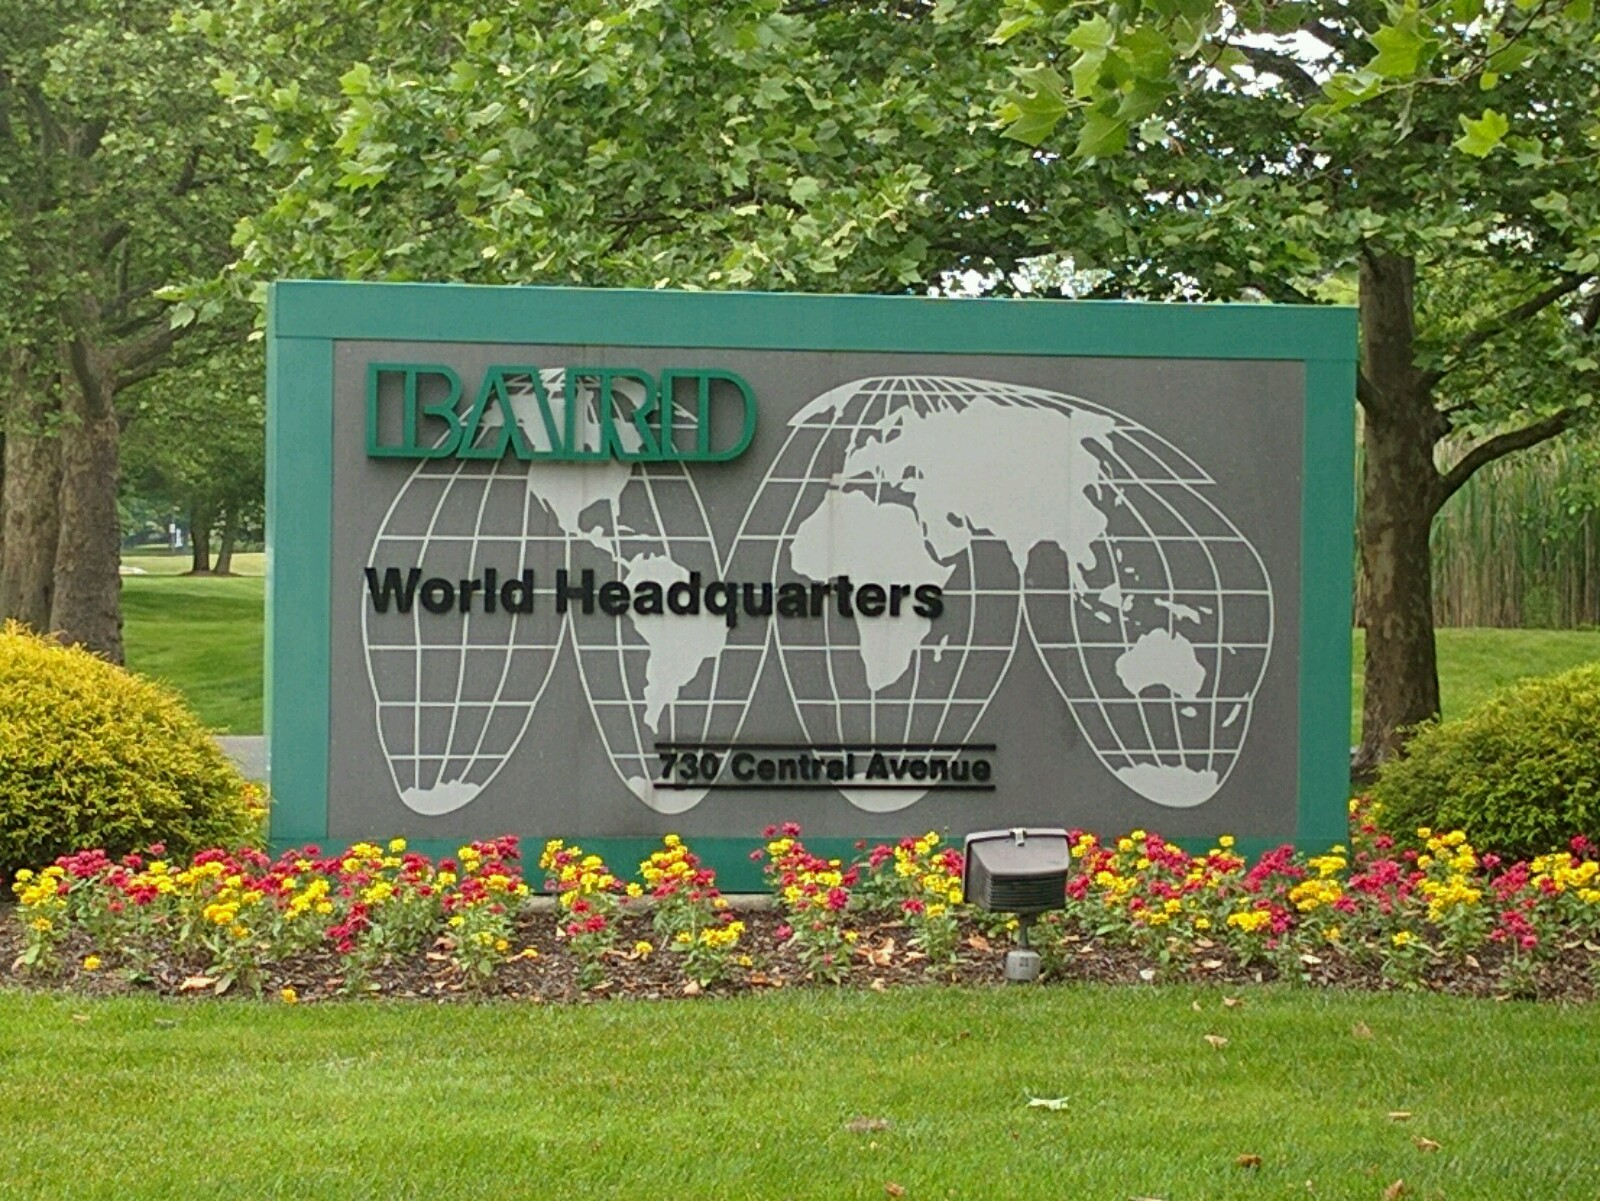 Entrance to C. R. Bard's corporate headquarters in Murray Hill, New Jersey.